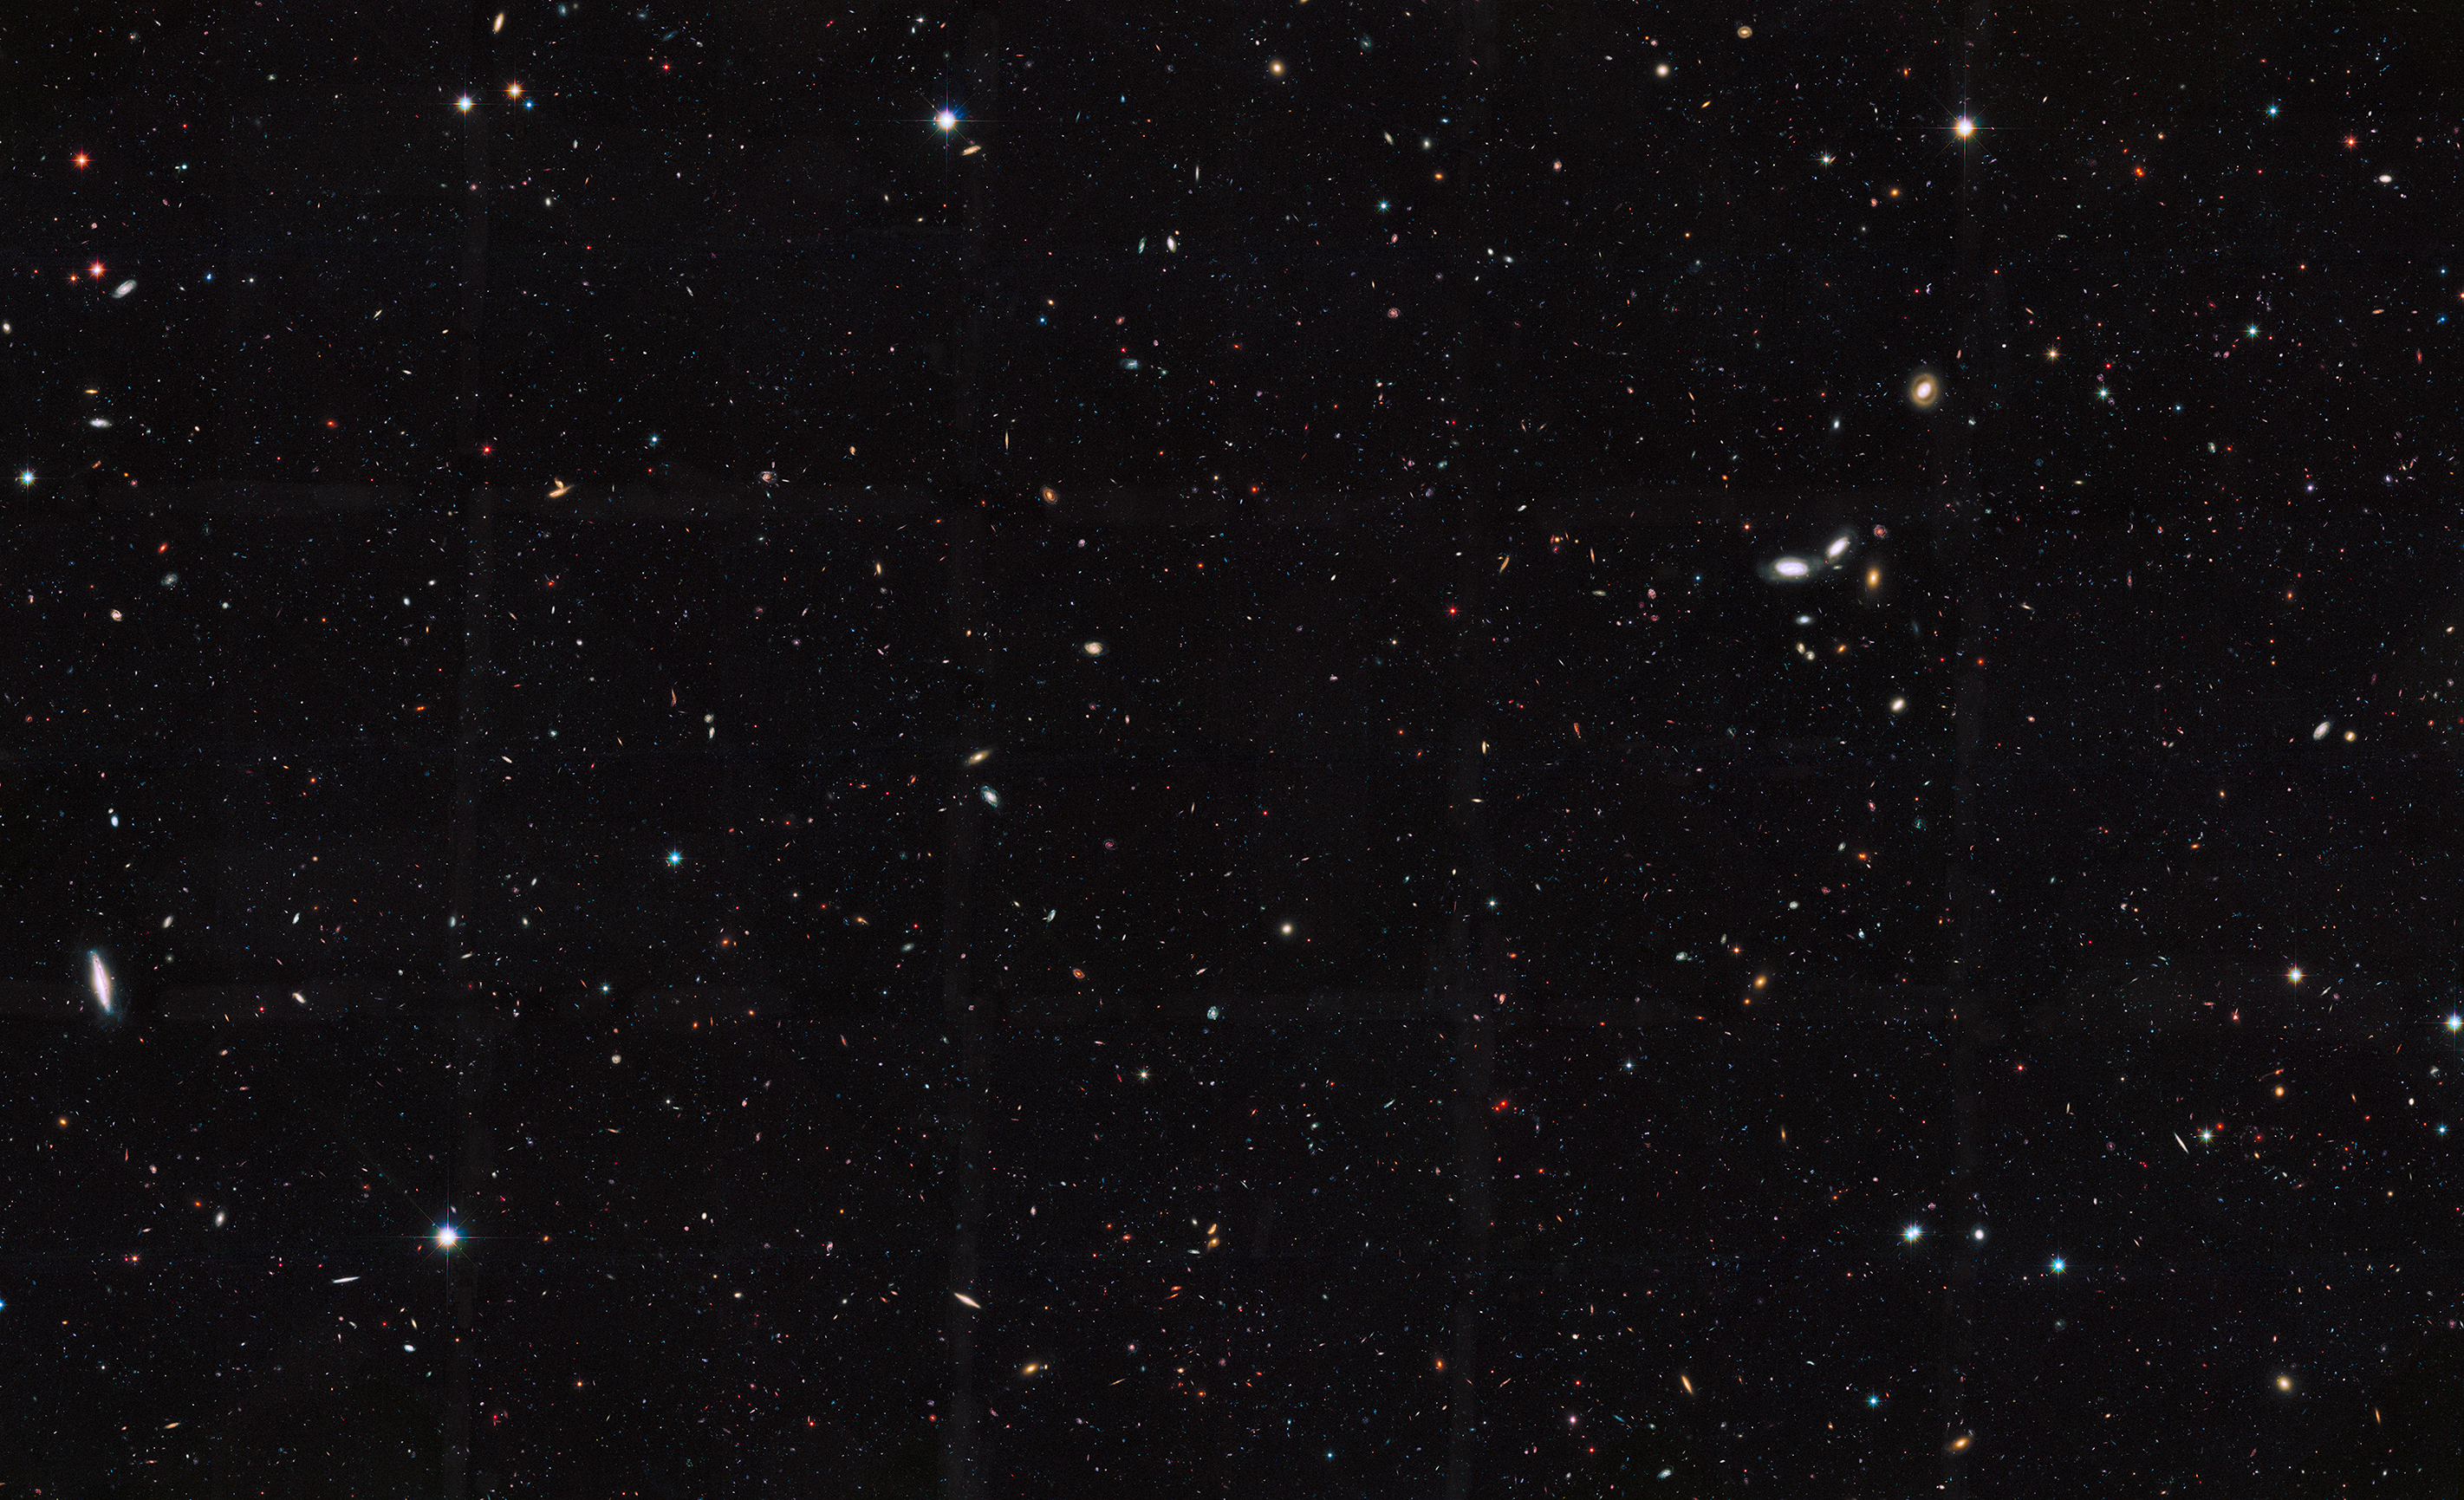 galaxies s and e - photo #2